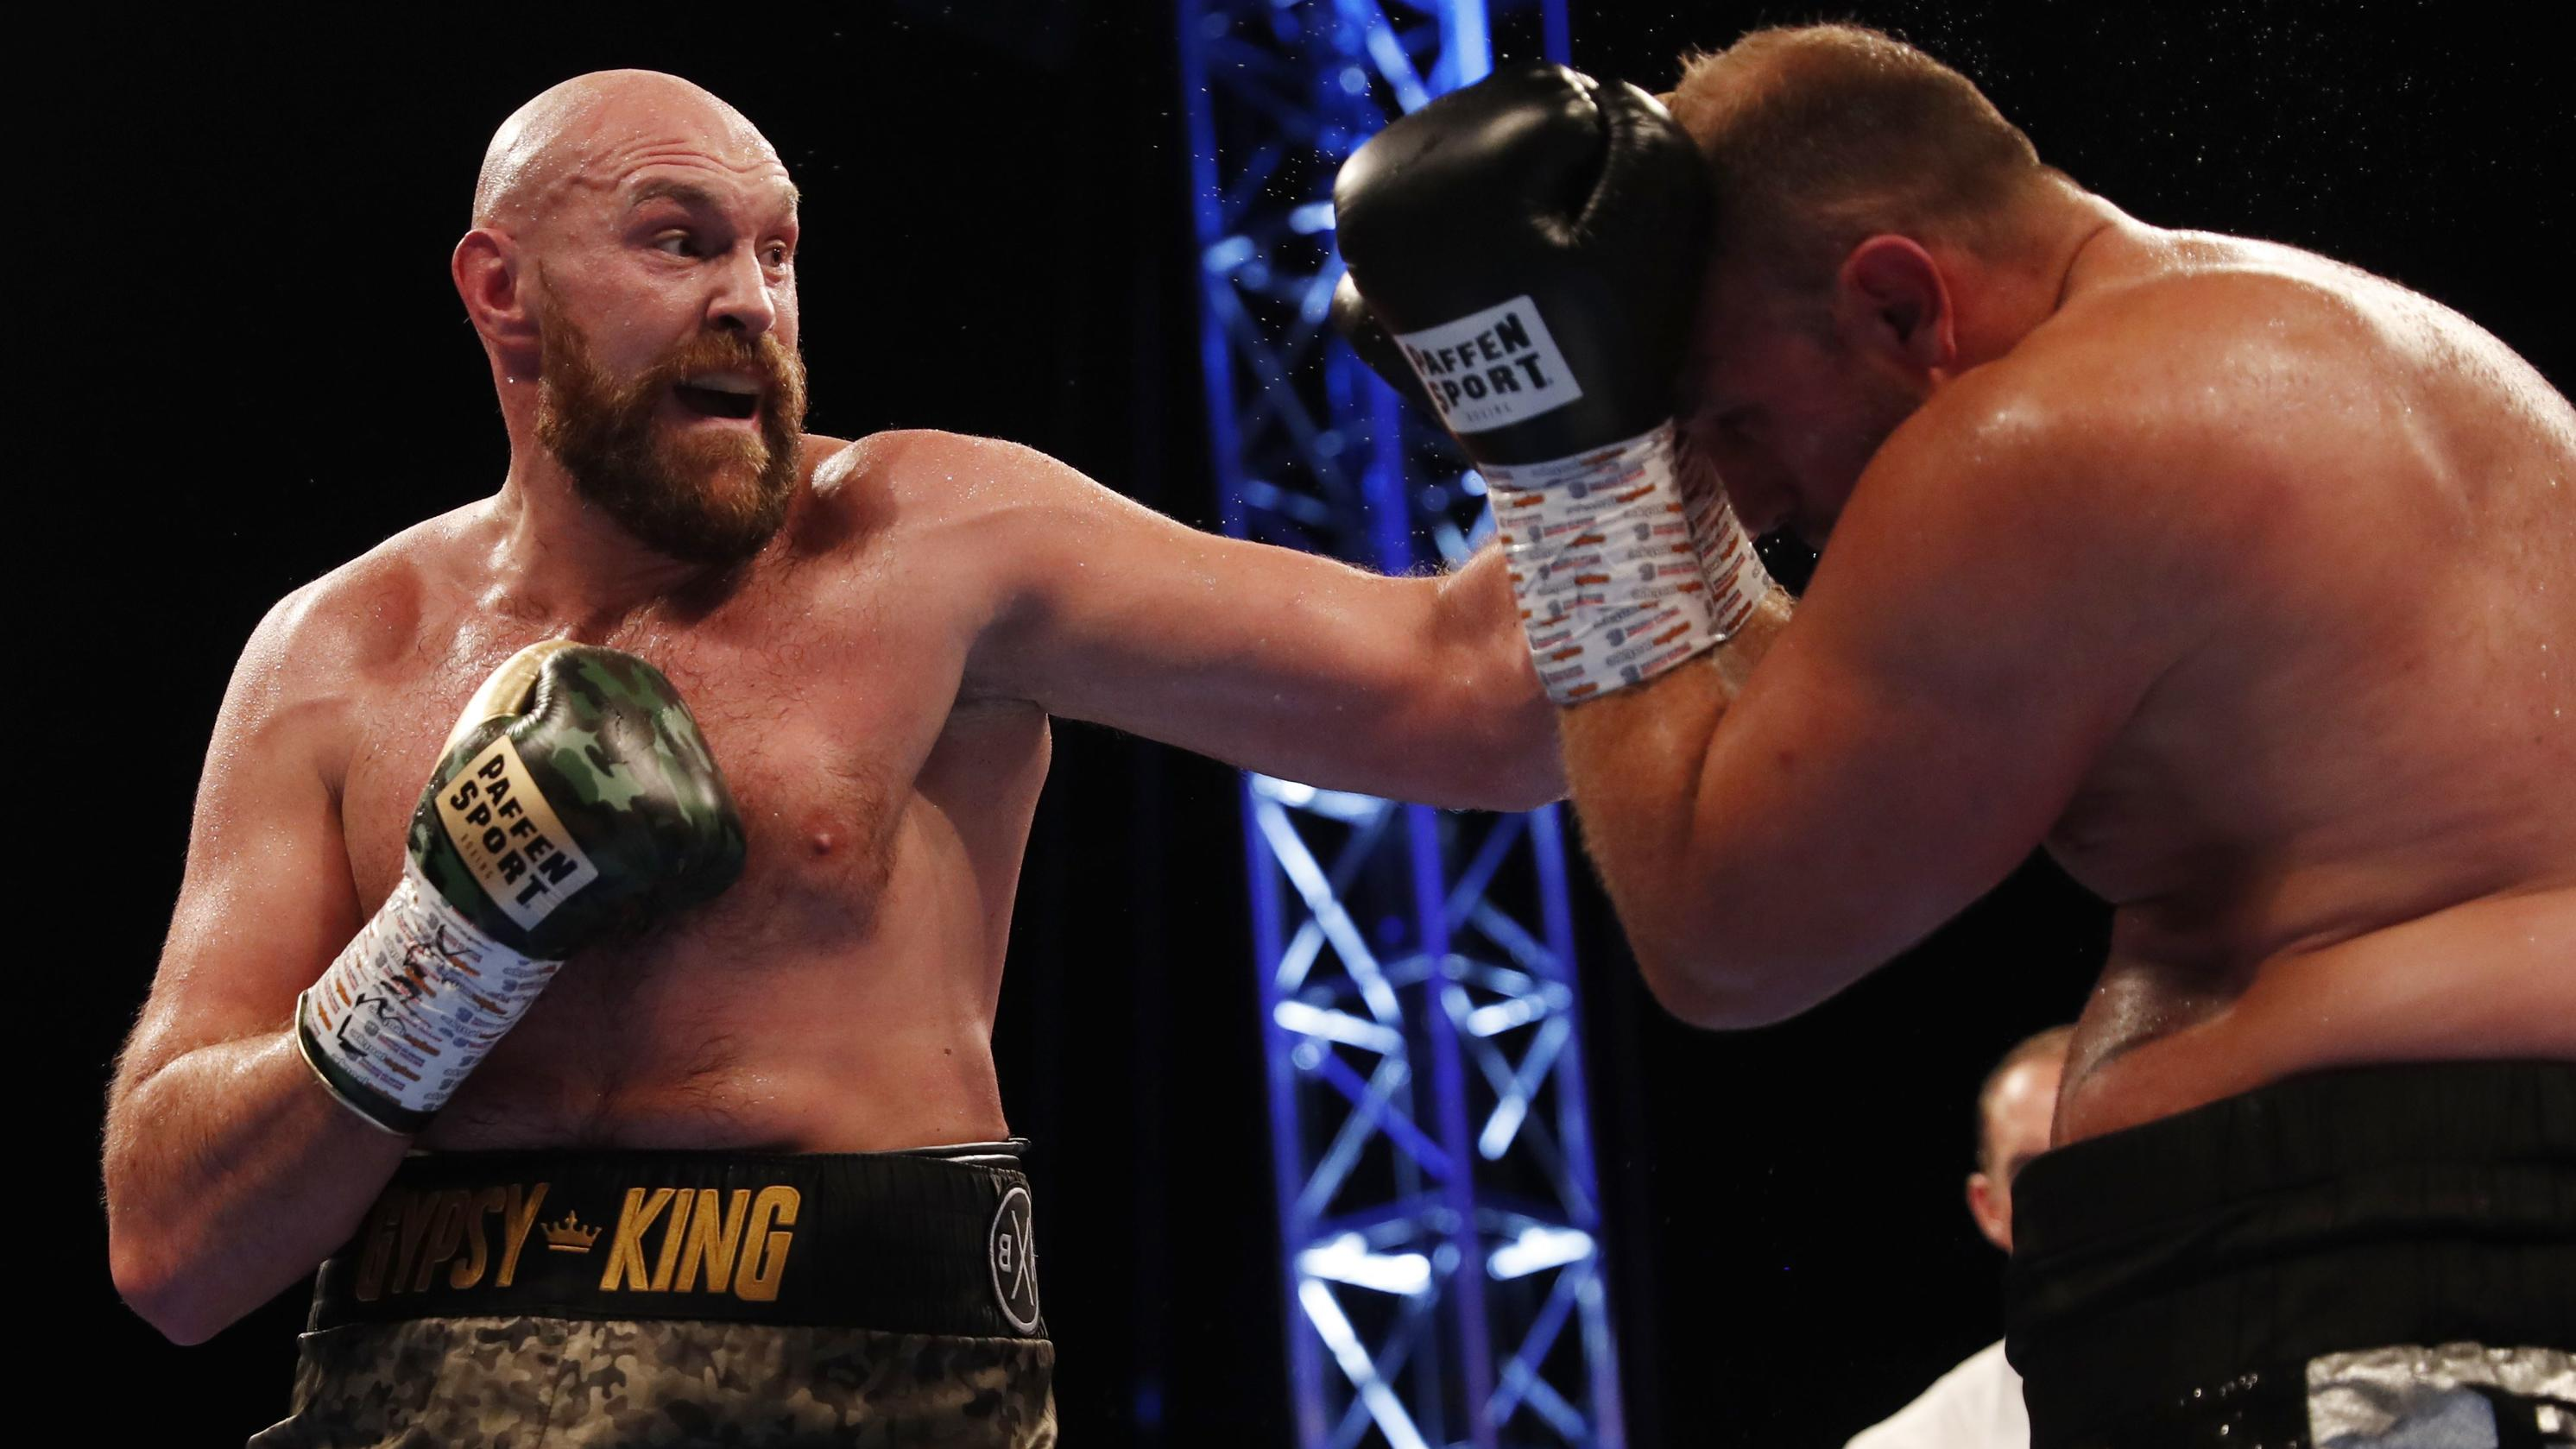 Boxing - Tyson Fury v Francesco Pianeta - Windsor Park, Belfast, Britain - August 18, 2018. Tyson Fury in action against Francesco Pianeta. Action Images via Reuters/Lee Smith